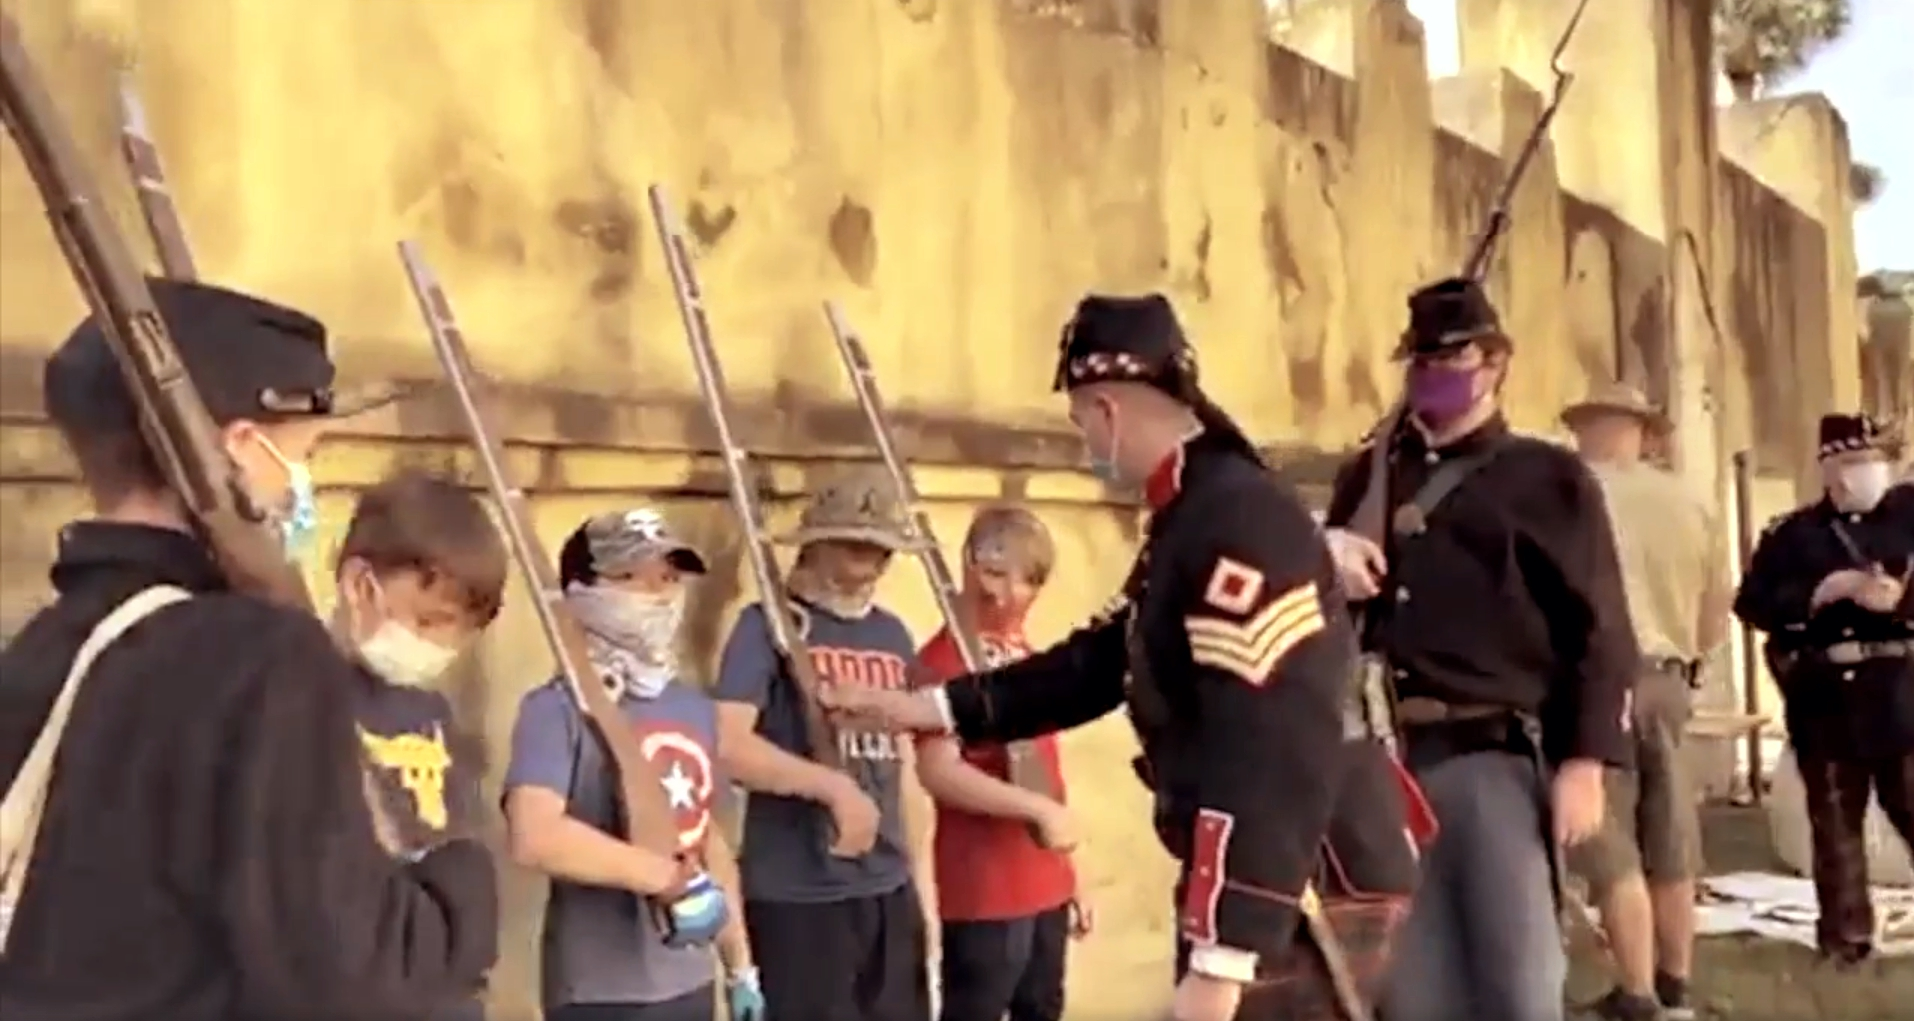 Young visitors experience Civil War era military drill